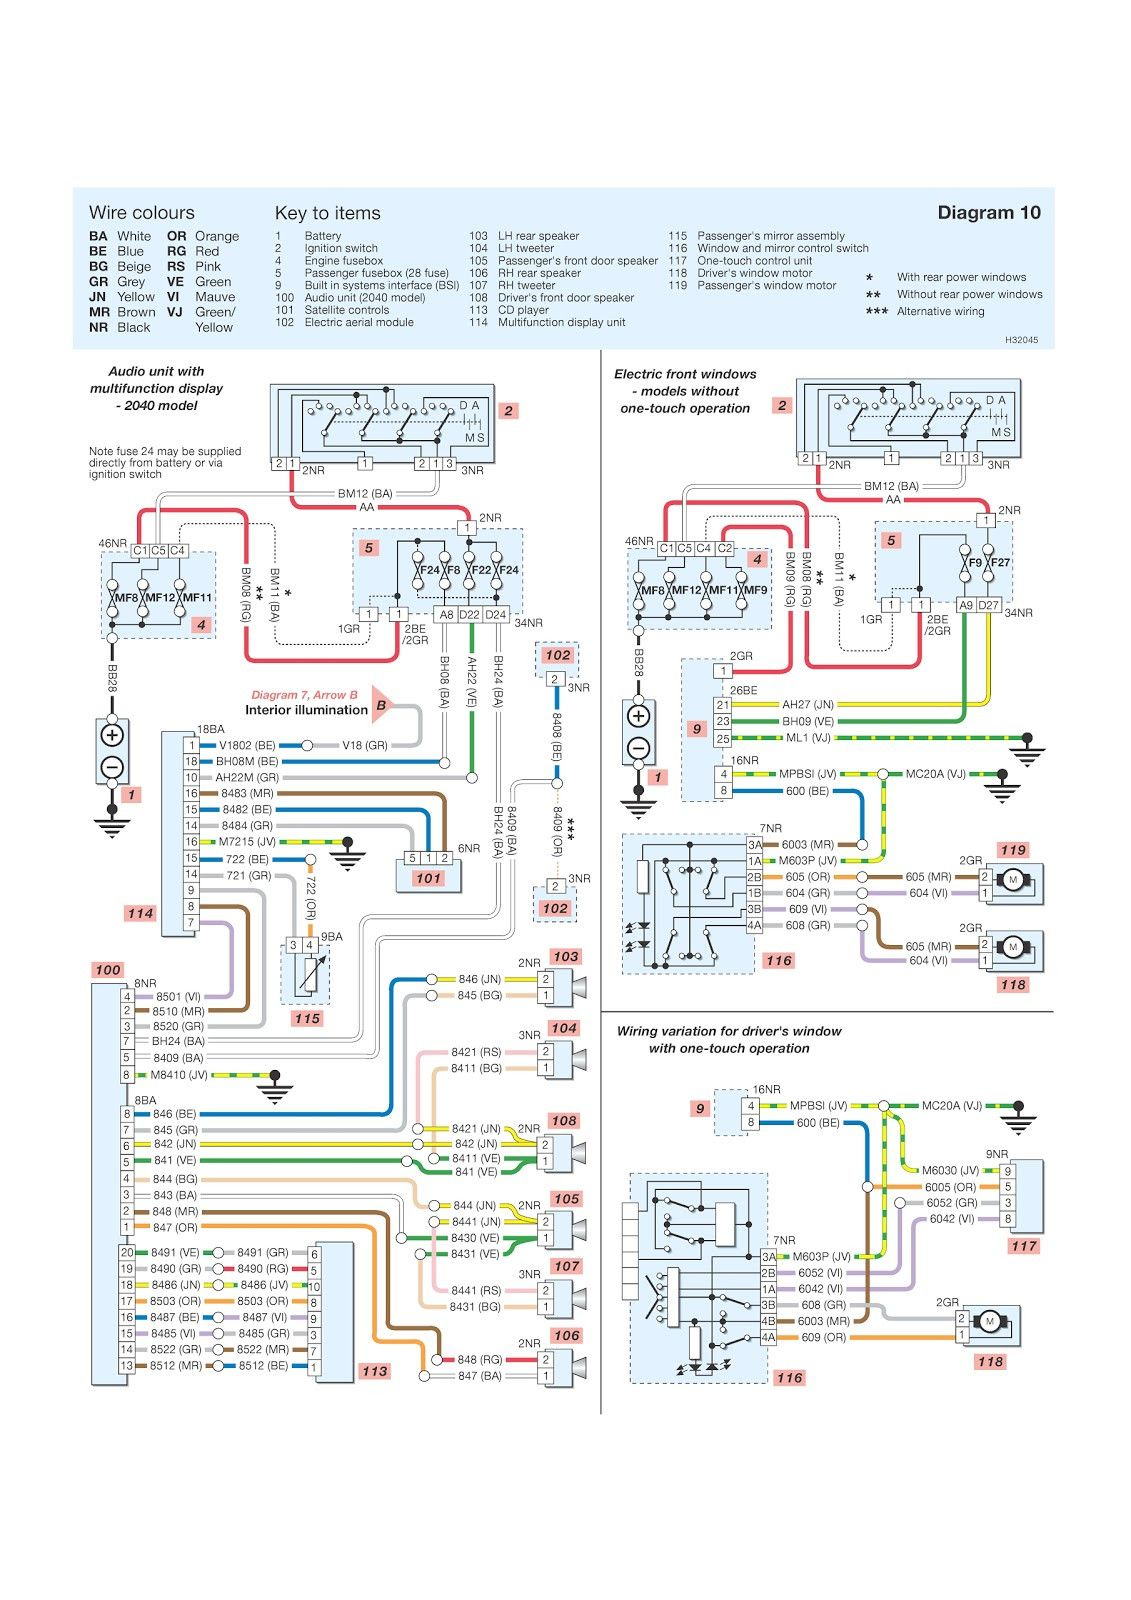 beautiful peugeot 206 radio wiring diagram photos electrical in car stereo wiring  diagram beautiful peugeot 206